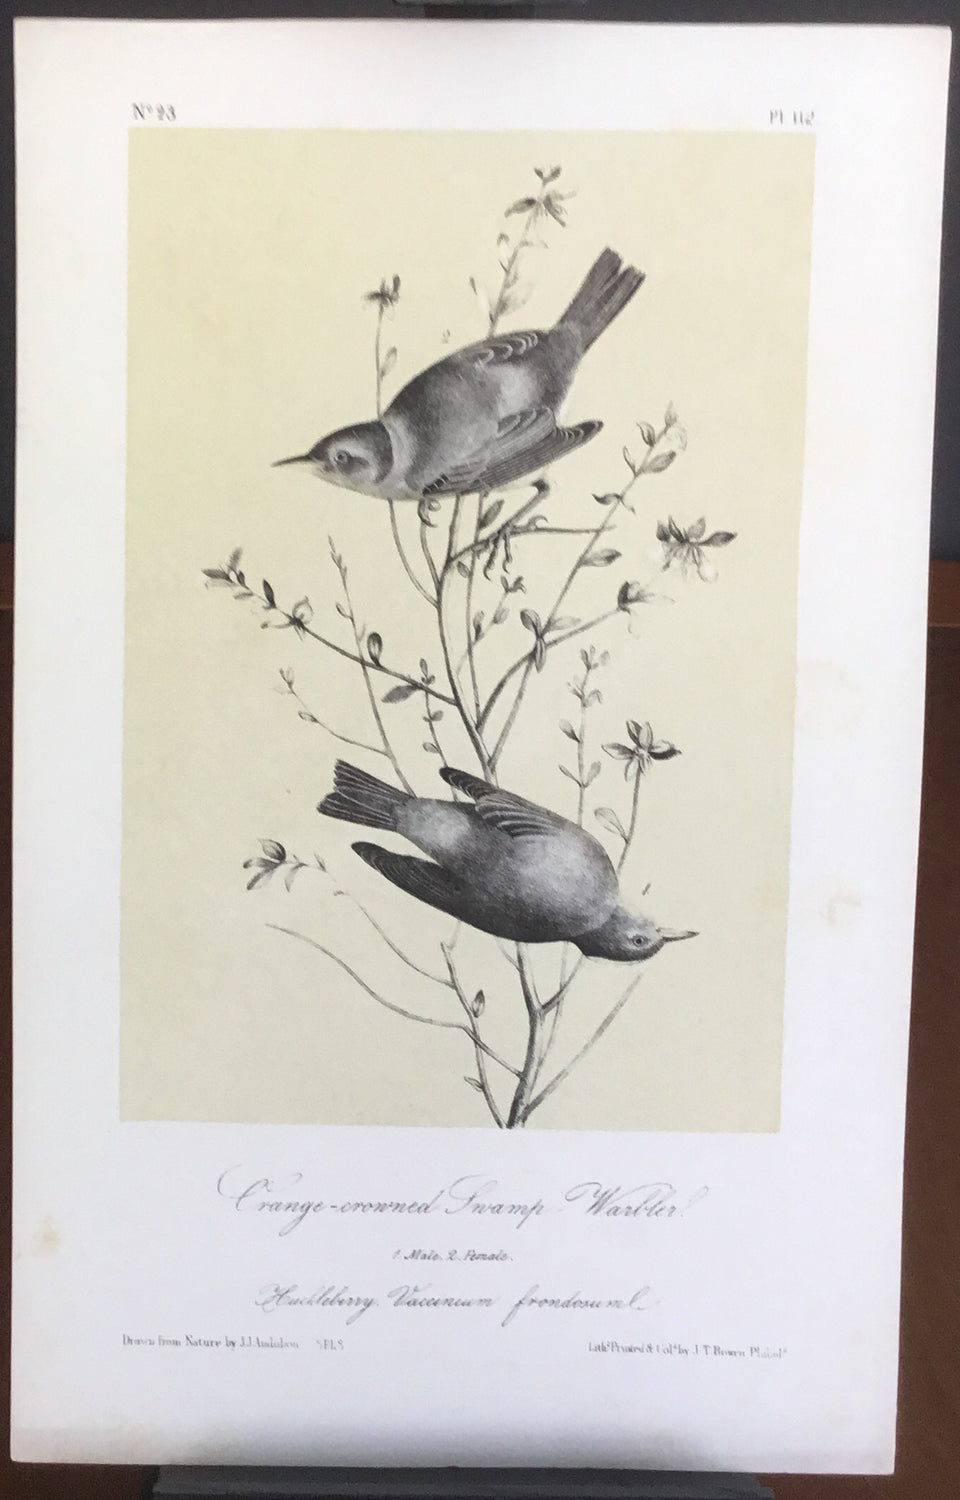 Audubon Octavo Orange-crowned Swamp Warbler, plate 112, uncolored test sheet, 7 x 11